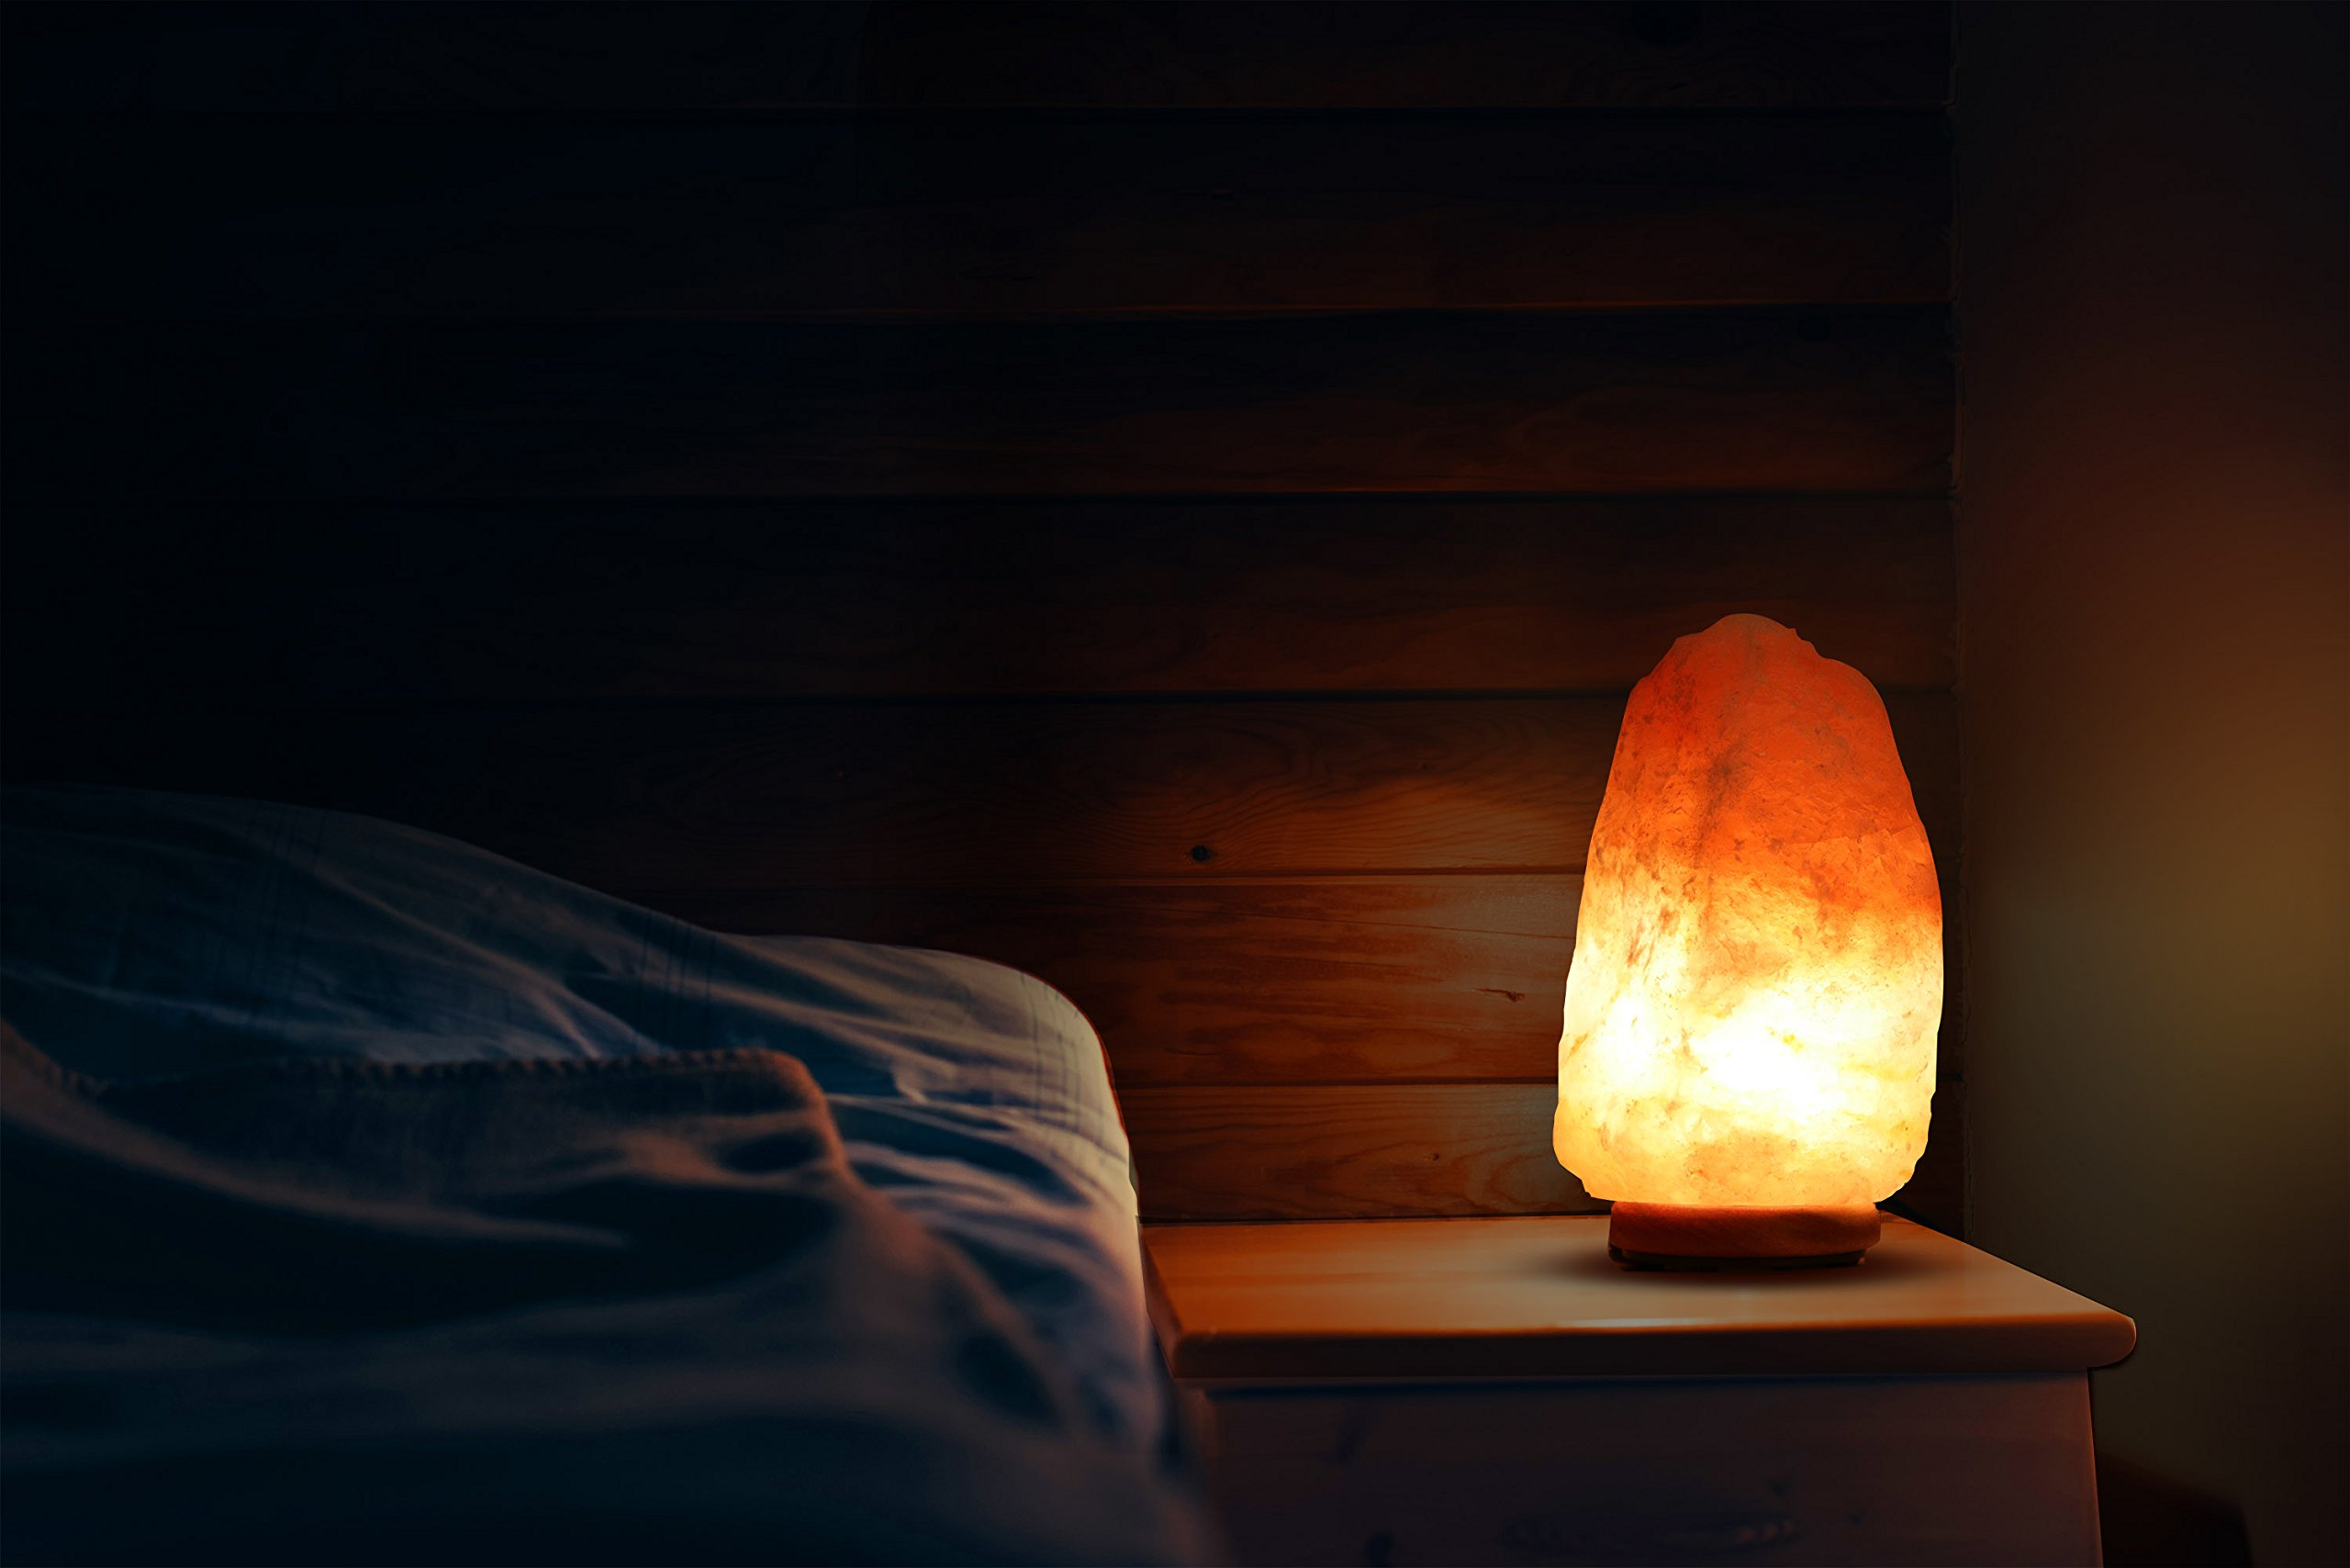 Utopia Home Natural Crystal Himalayan Salt Lamp with Extra Light Bulb - Genuine Neem Wood Base - Bulb and Dimmer Control by Utopia Home (Image #6)